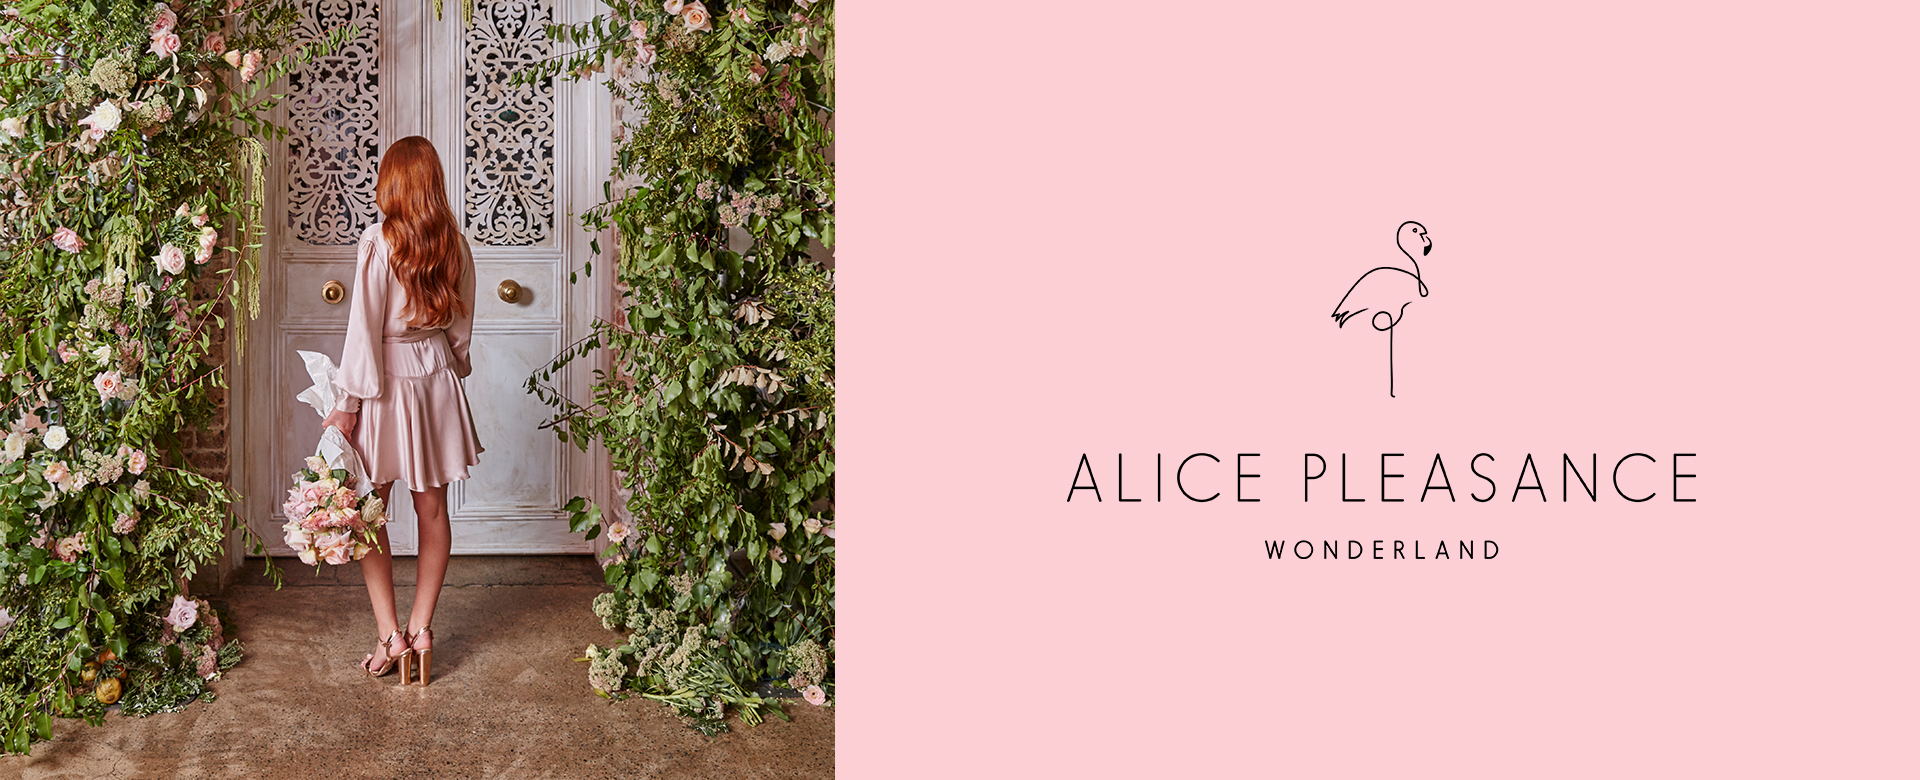 Alice Pleasance Wonderland